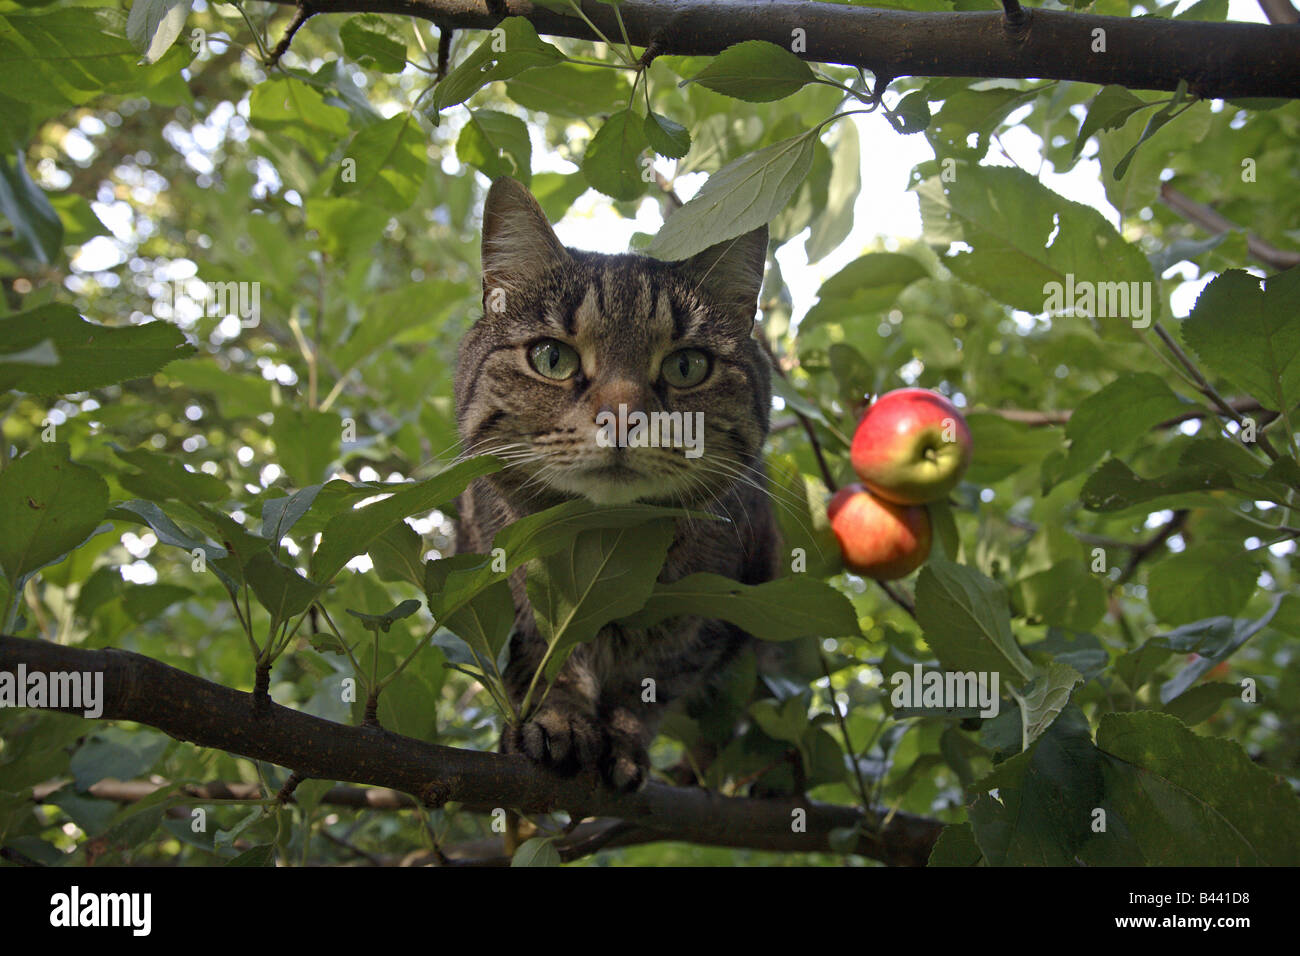 cat in an apple tree stock photo 19757956 alamy. Black Bedroom Furniture Sets. Home Design Ideas